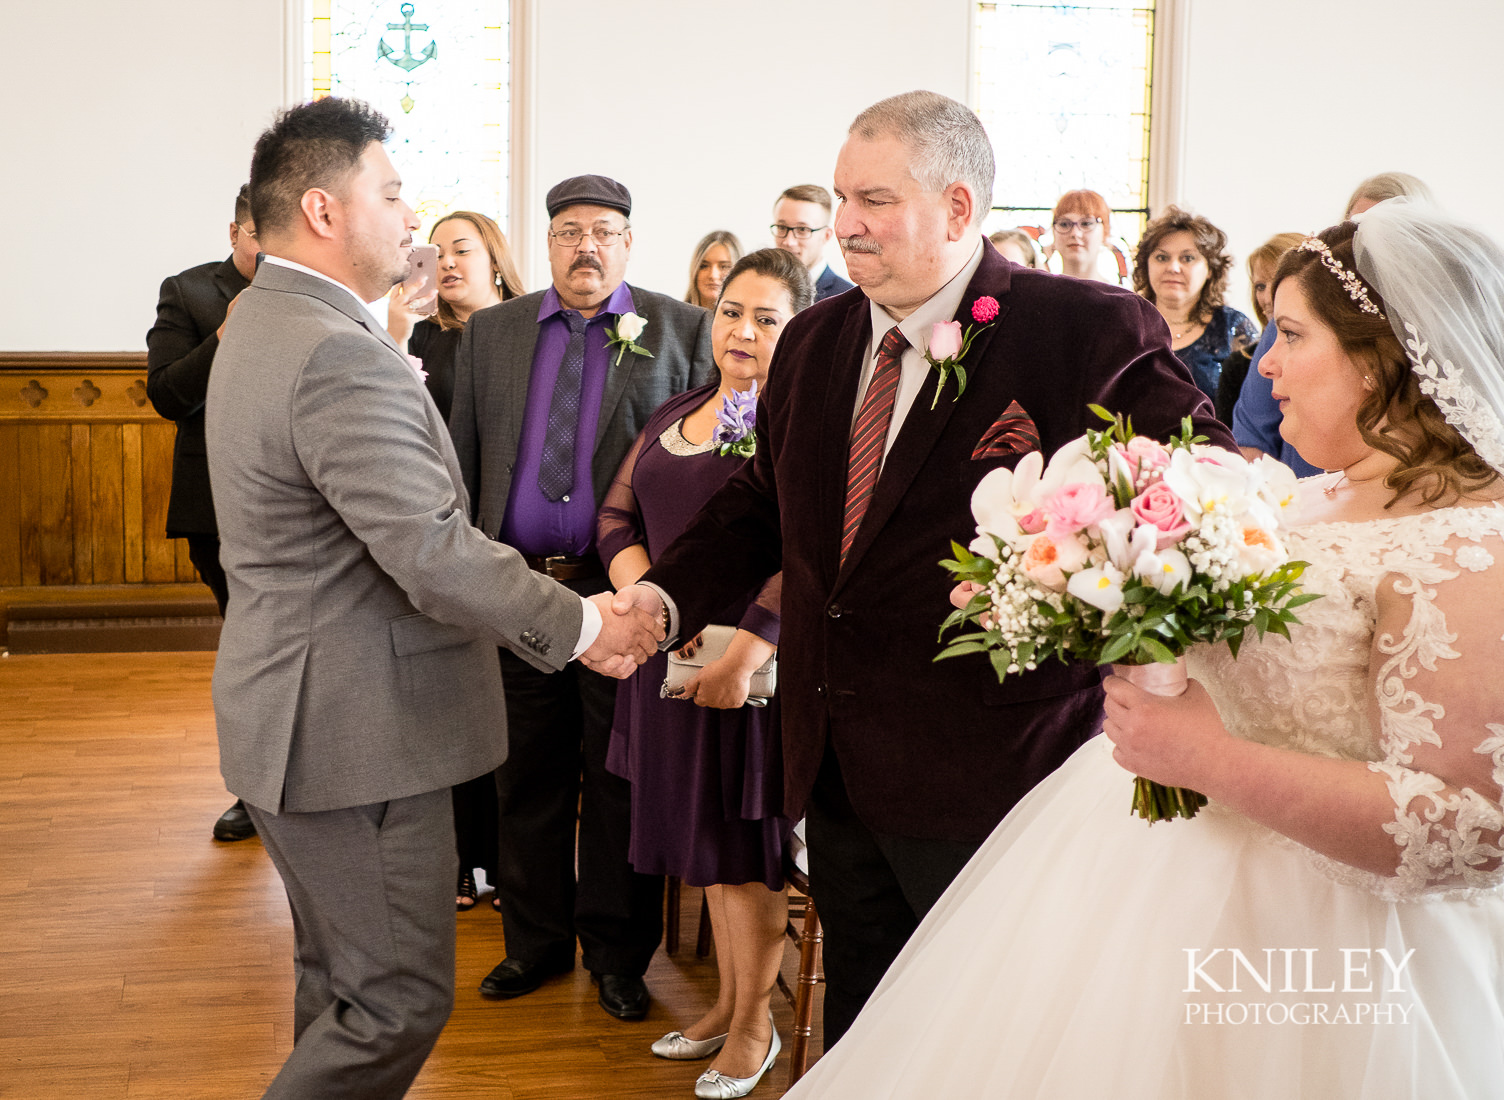 035 - Westminster Chapel - Rochester NY wedding photo - Kniley Photography.jpg